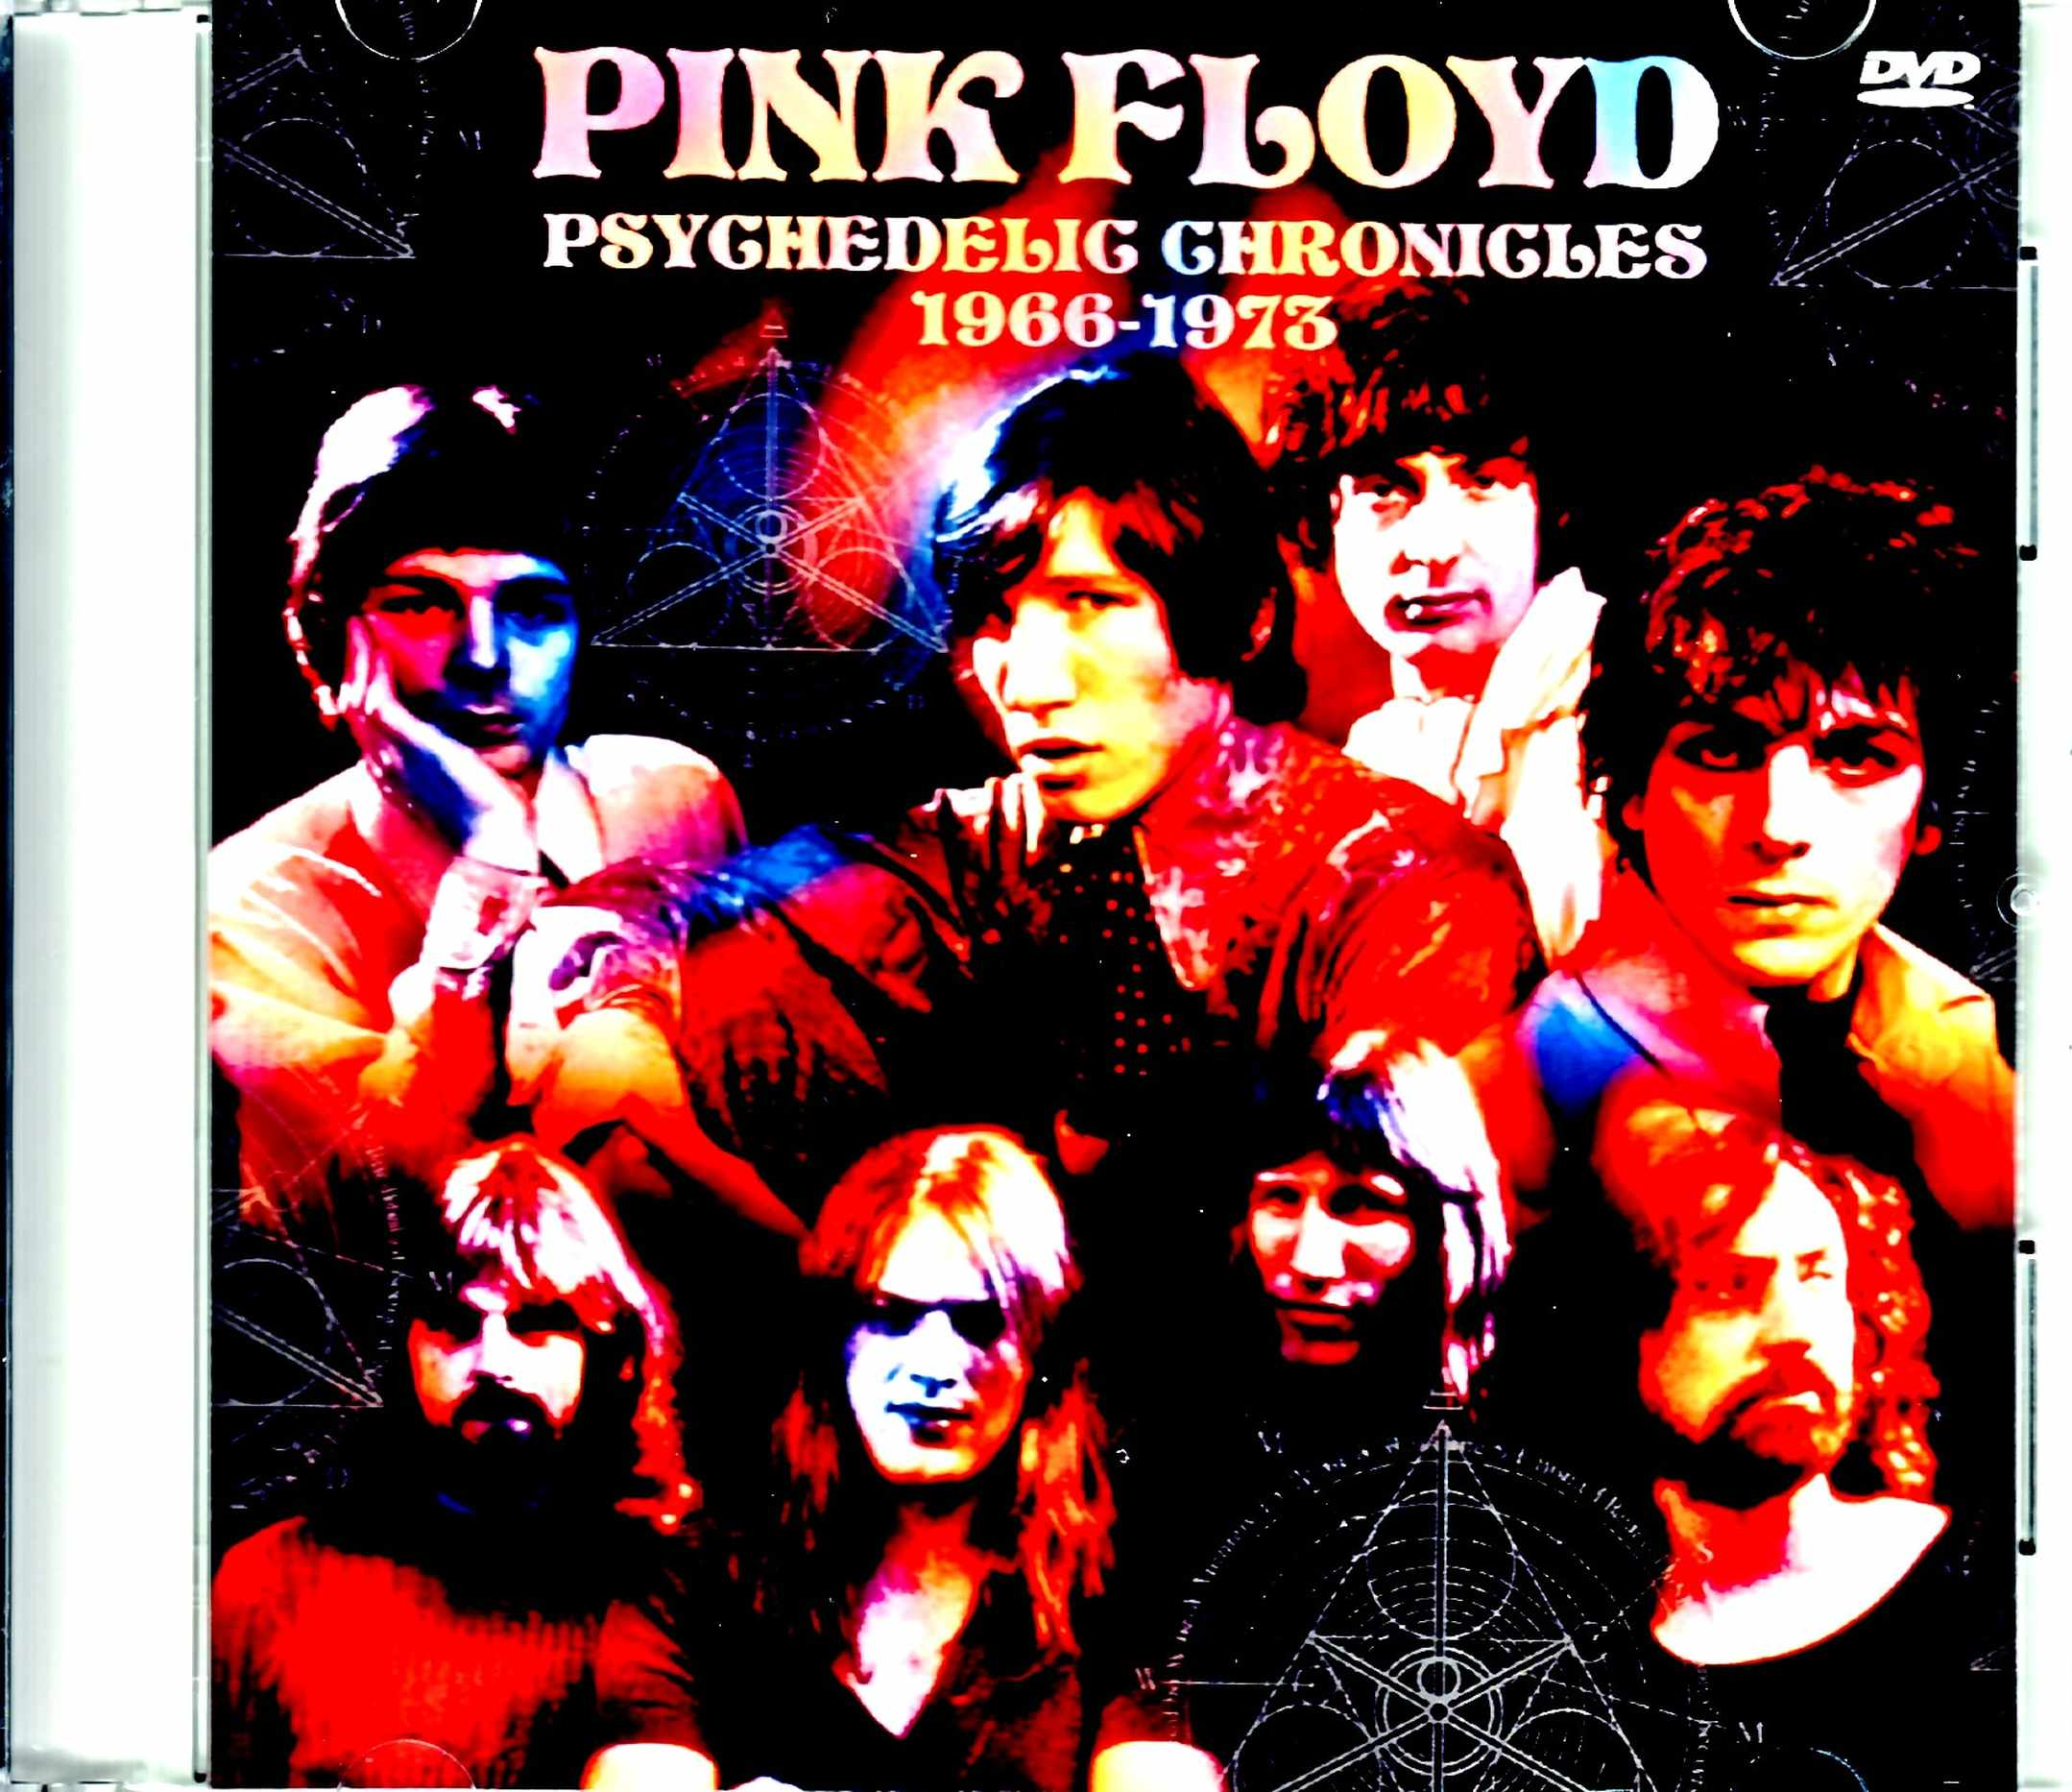 Pink Floyd ピンク・フロイド/Pro-Shot Collection 1968-1975